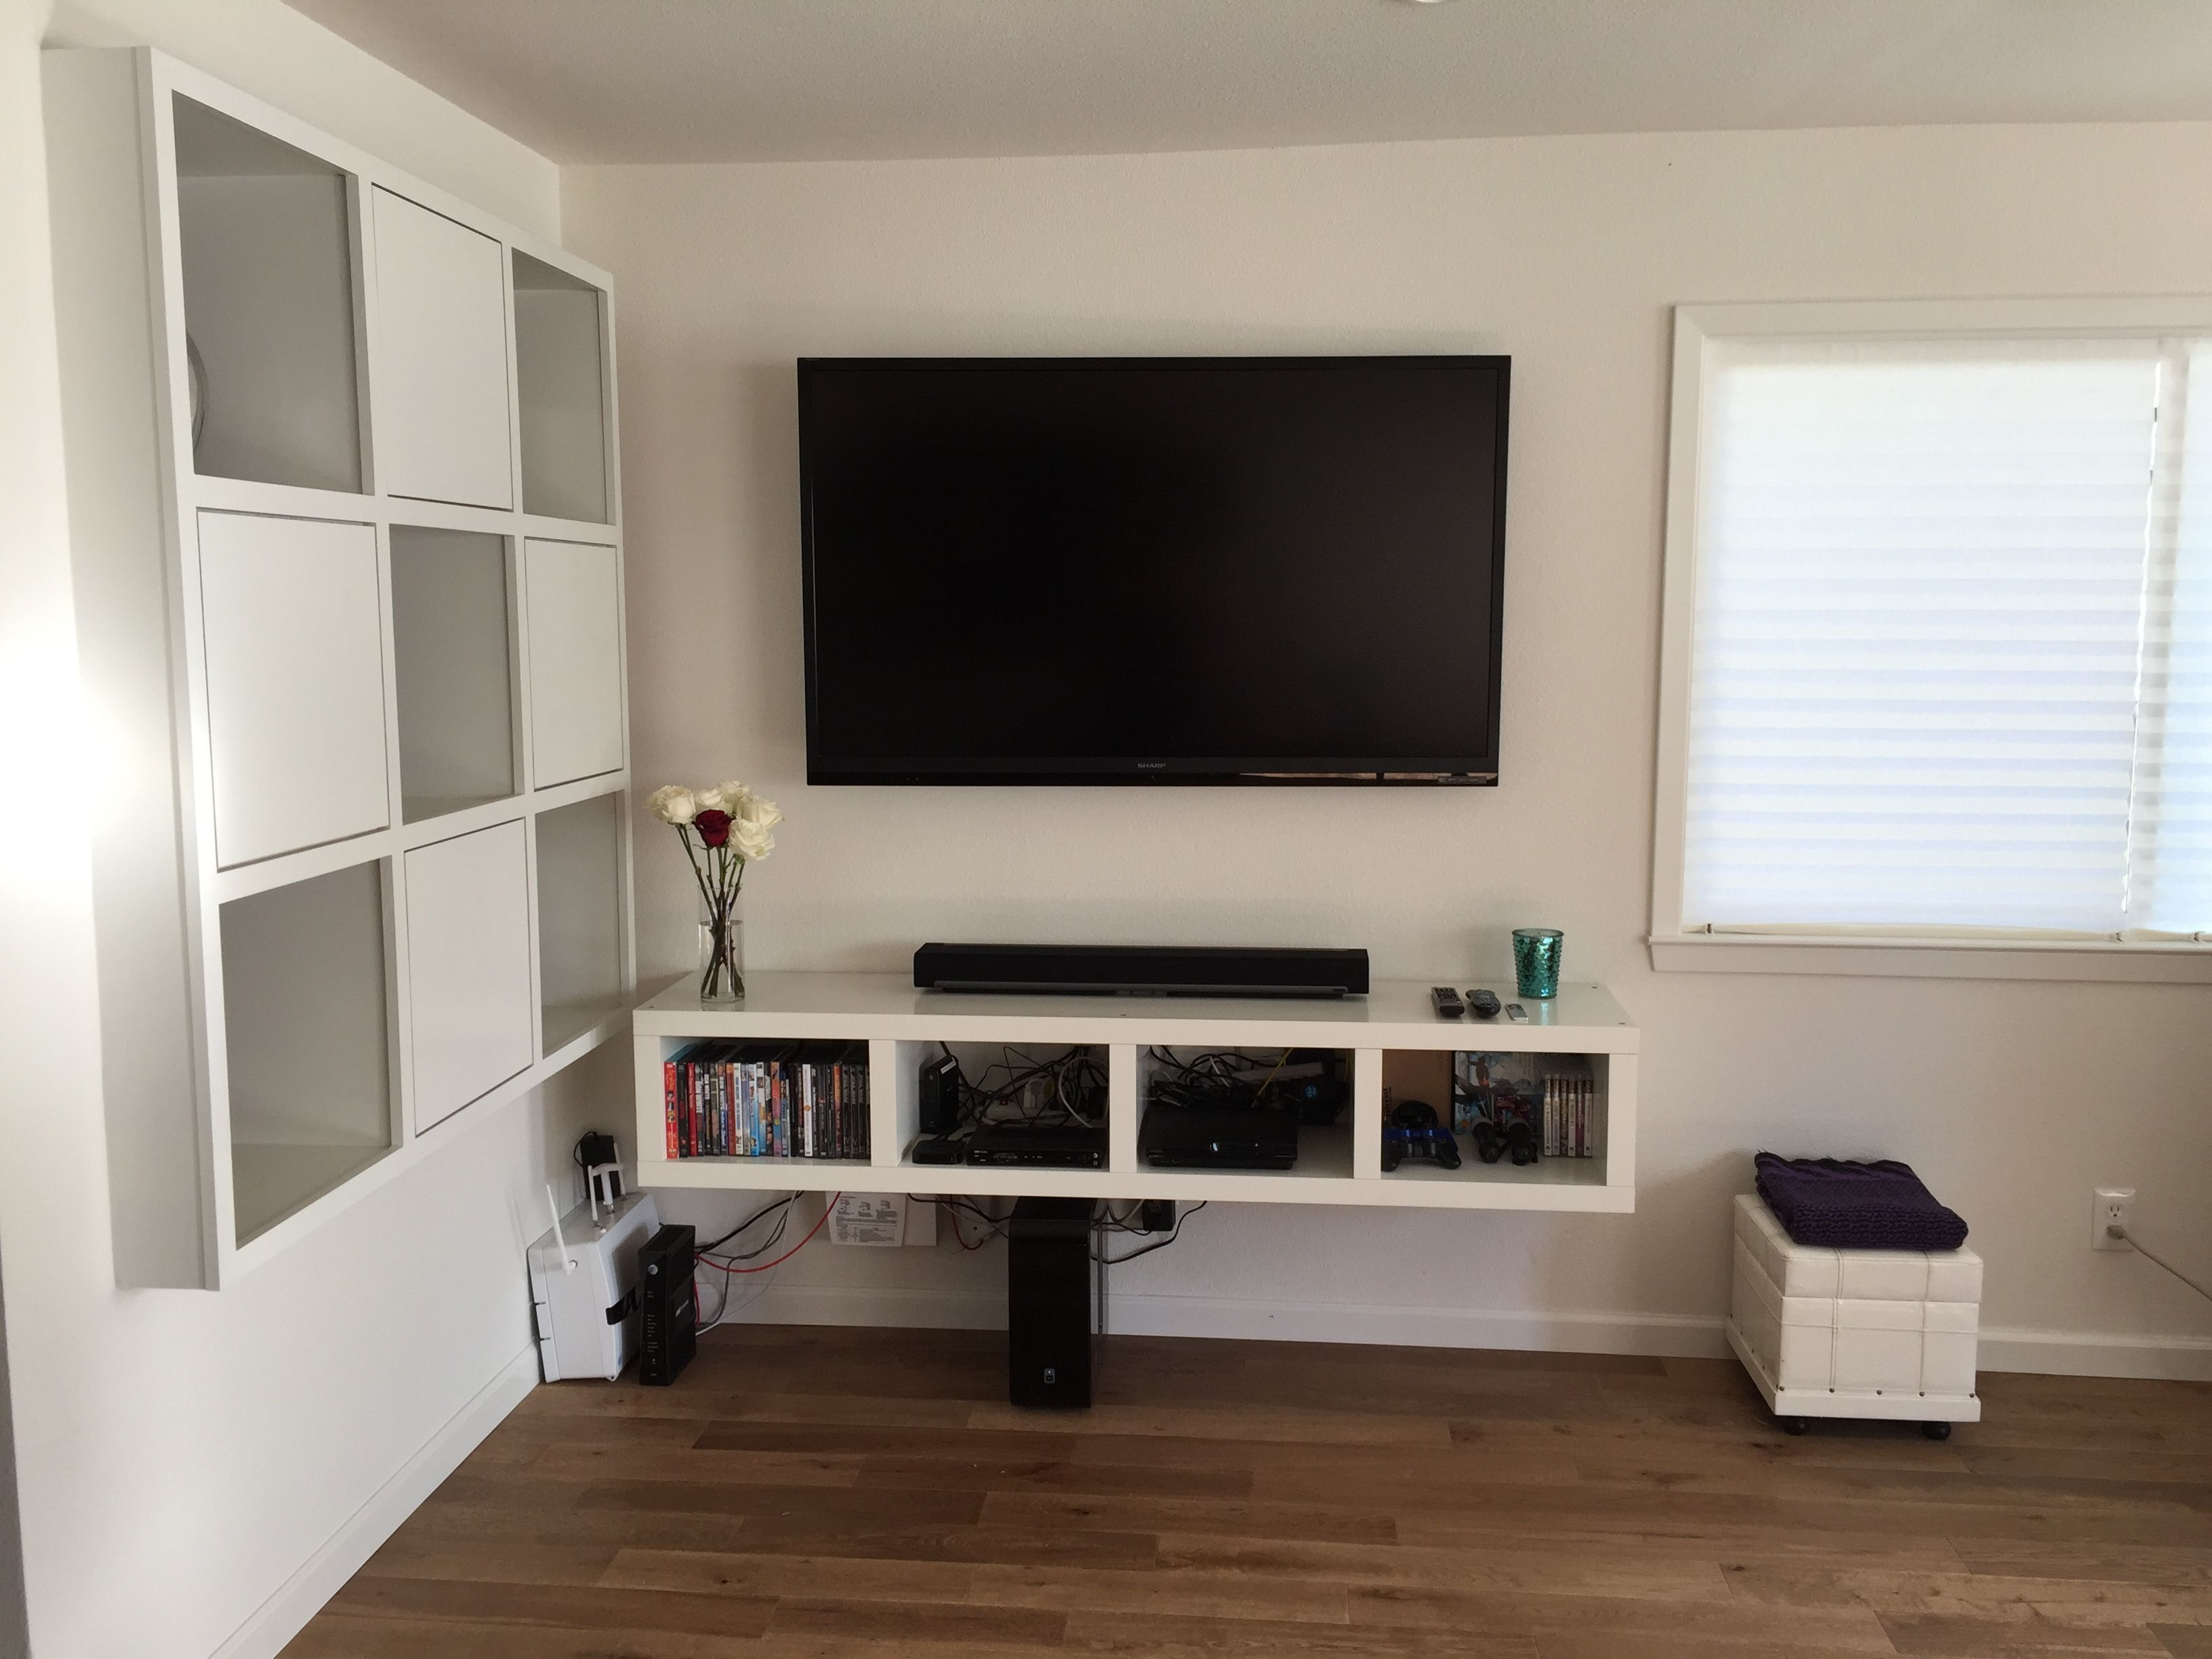 Ikea Bookshelf Converted To Floating Tv Stand Expedit